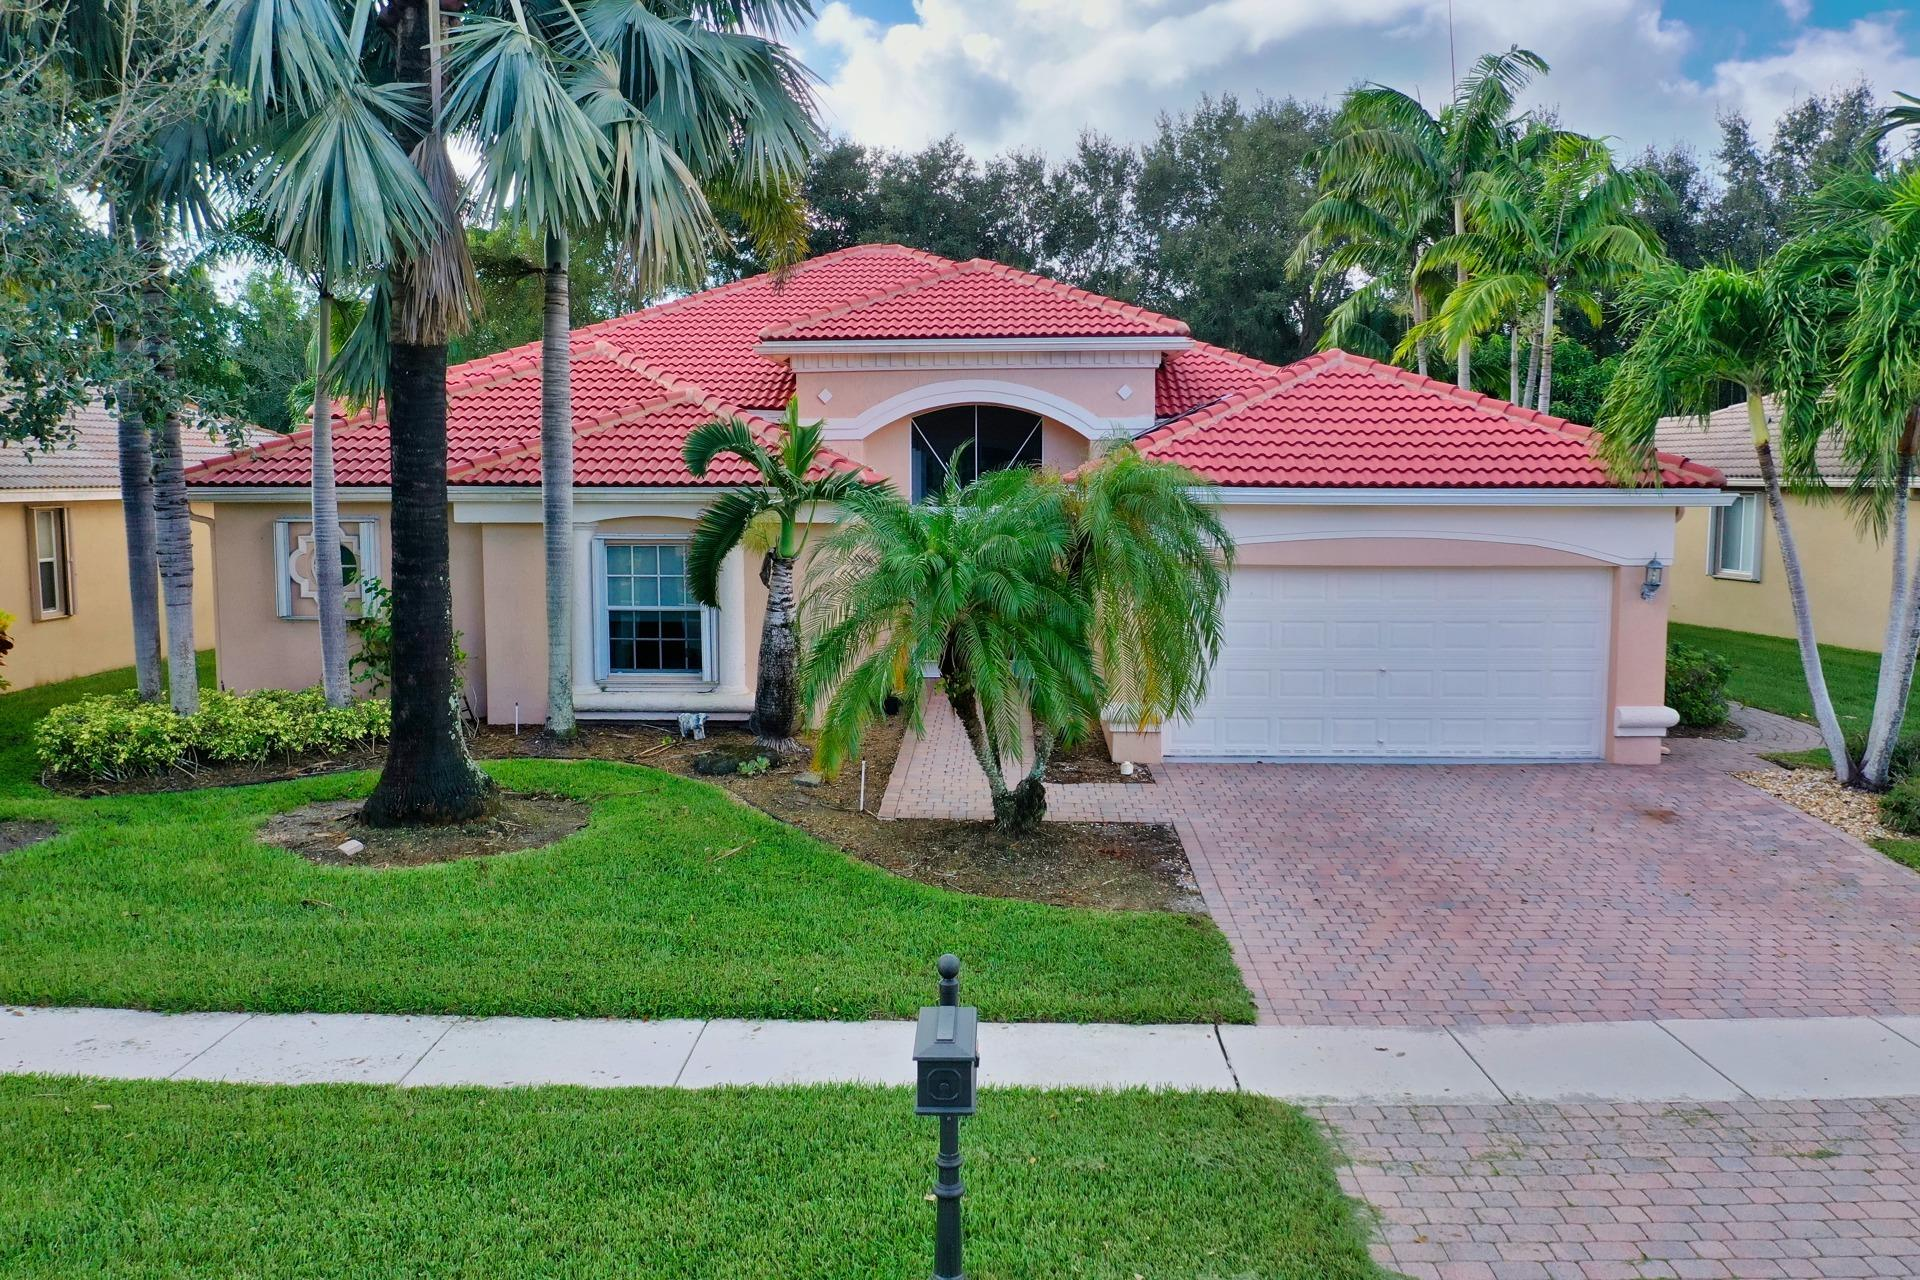 Home for sale in Bellaggio / Towne Park Lake Worth Florida